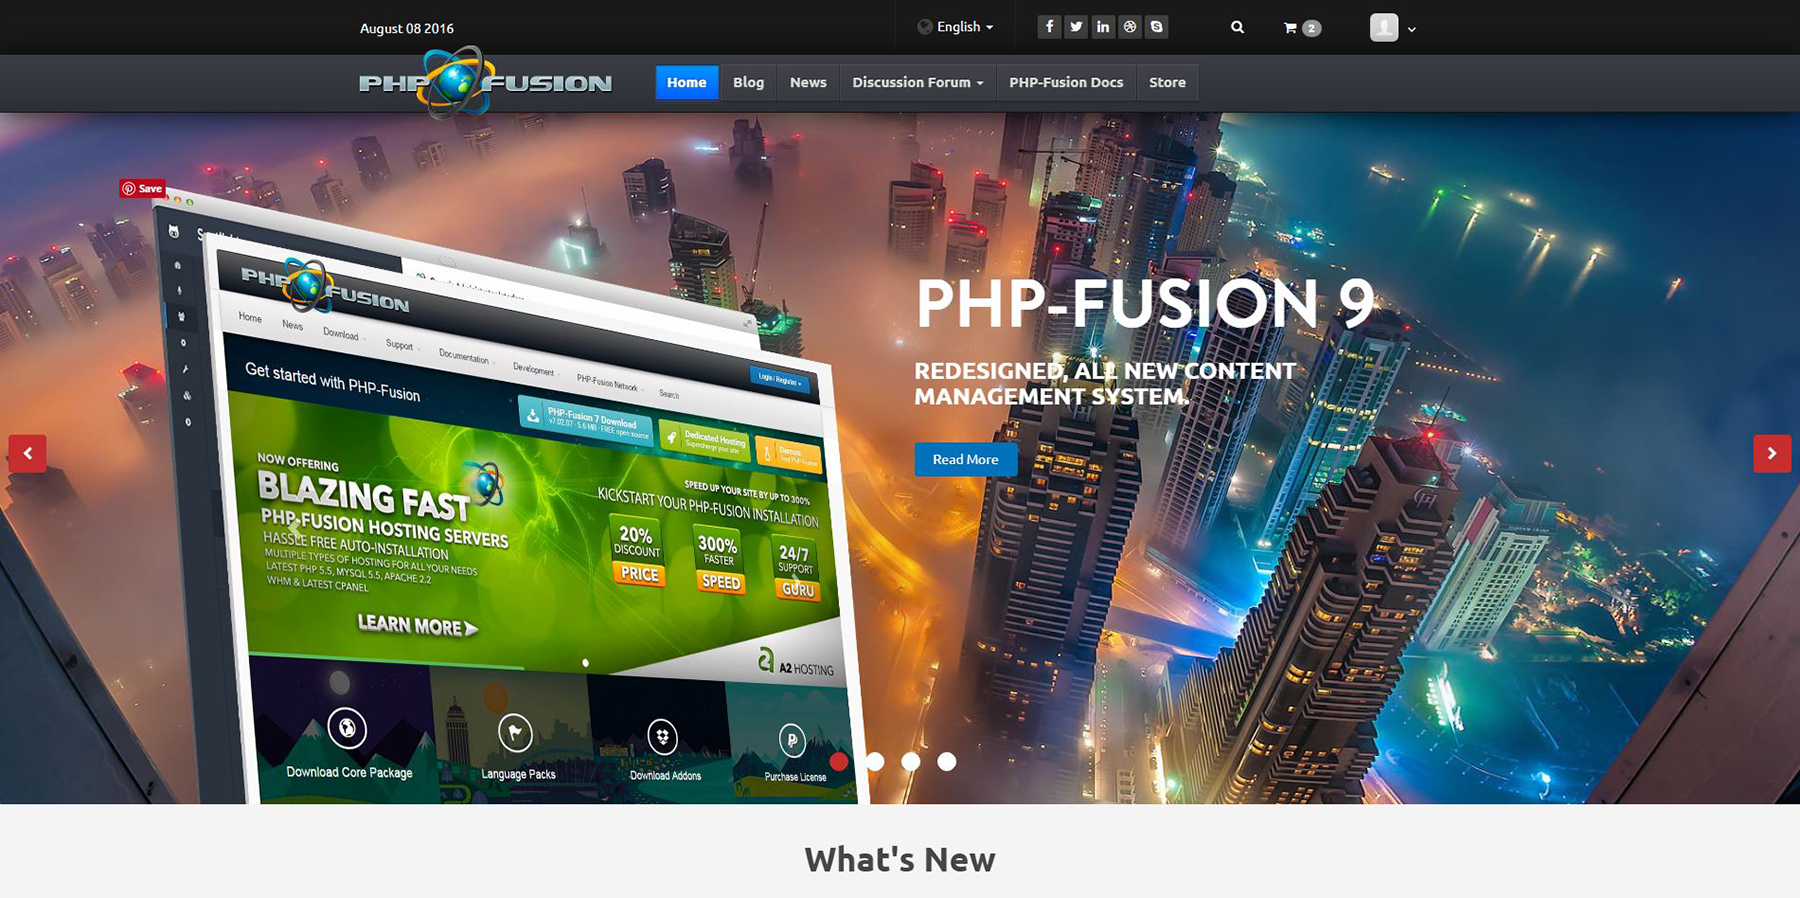 PHP-Fusion 9 RC 4 Available